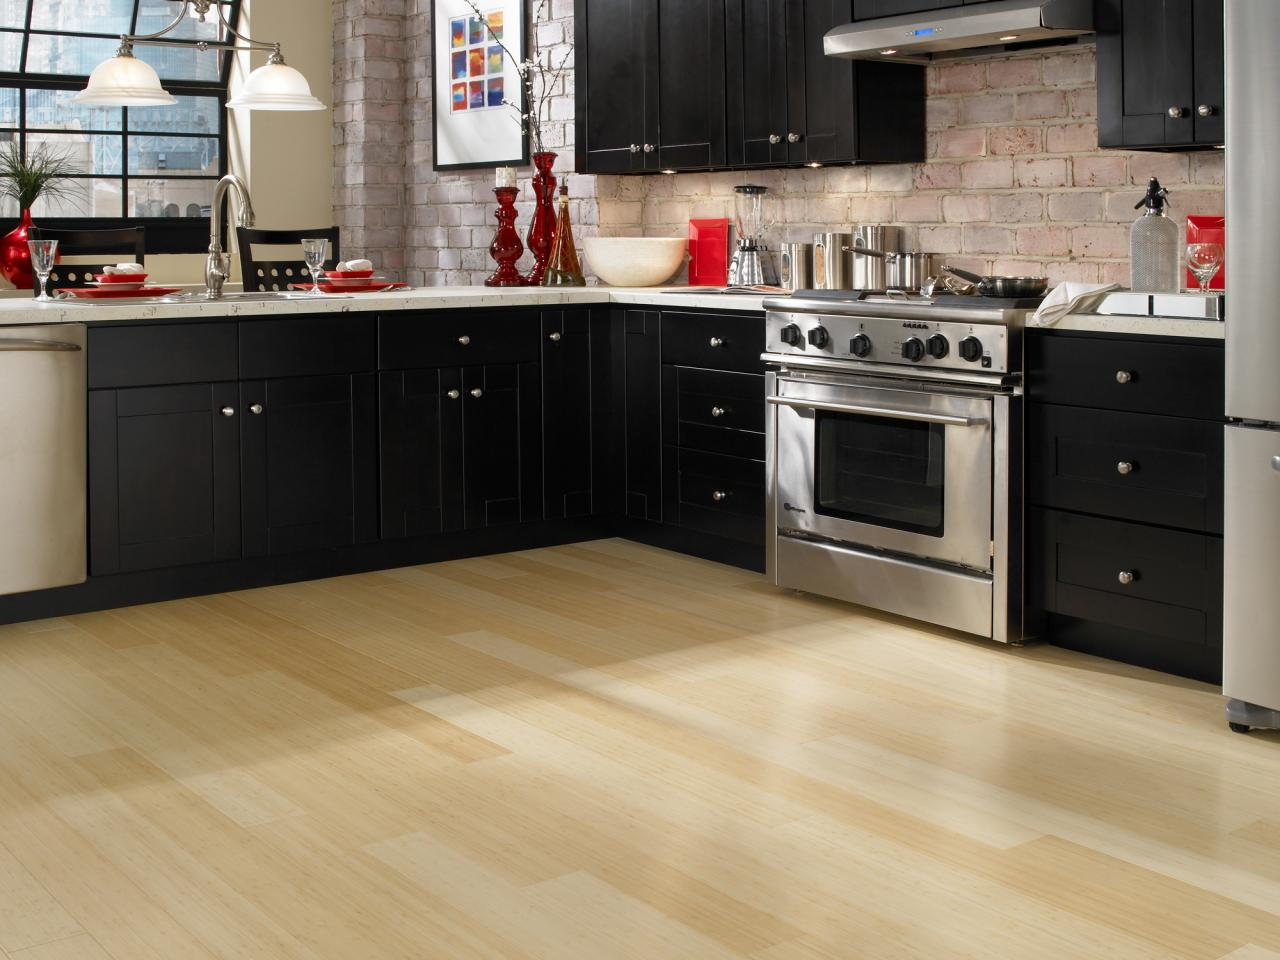 Tile For Restaurant Kitchen Floors Guide To Selecting Flooring Diy